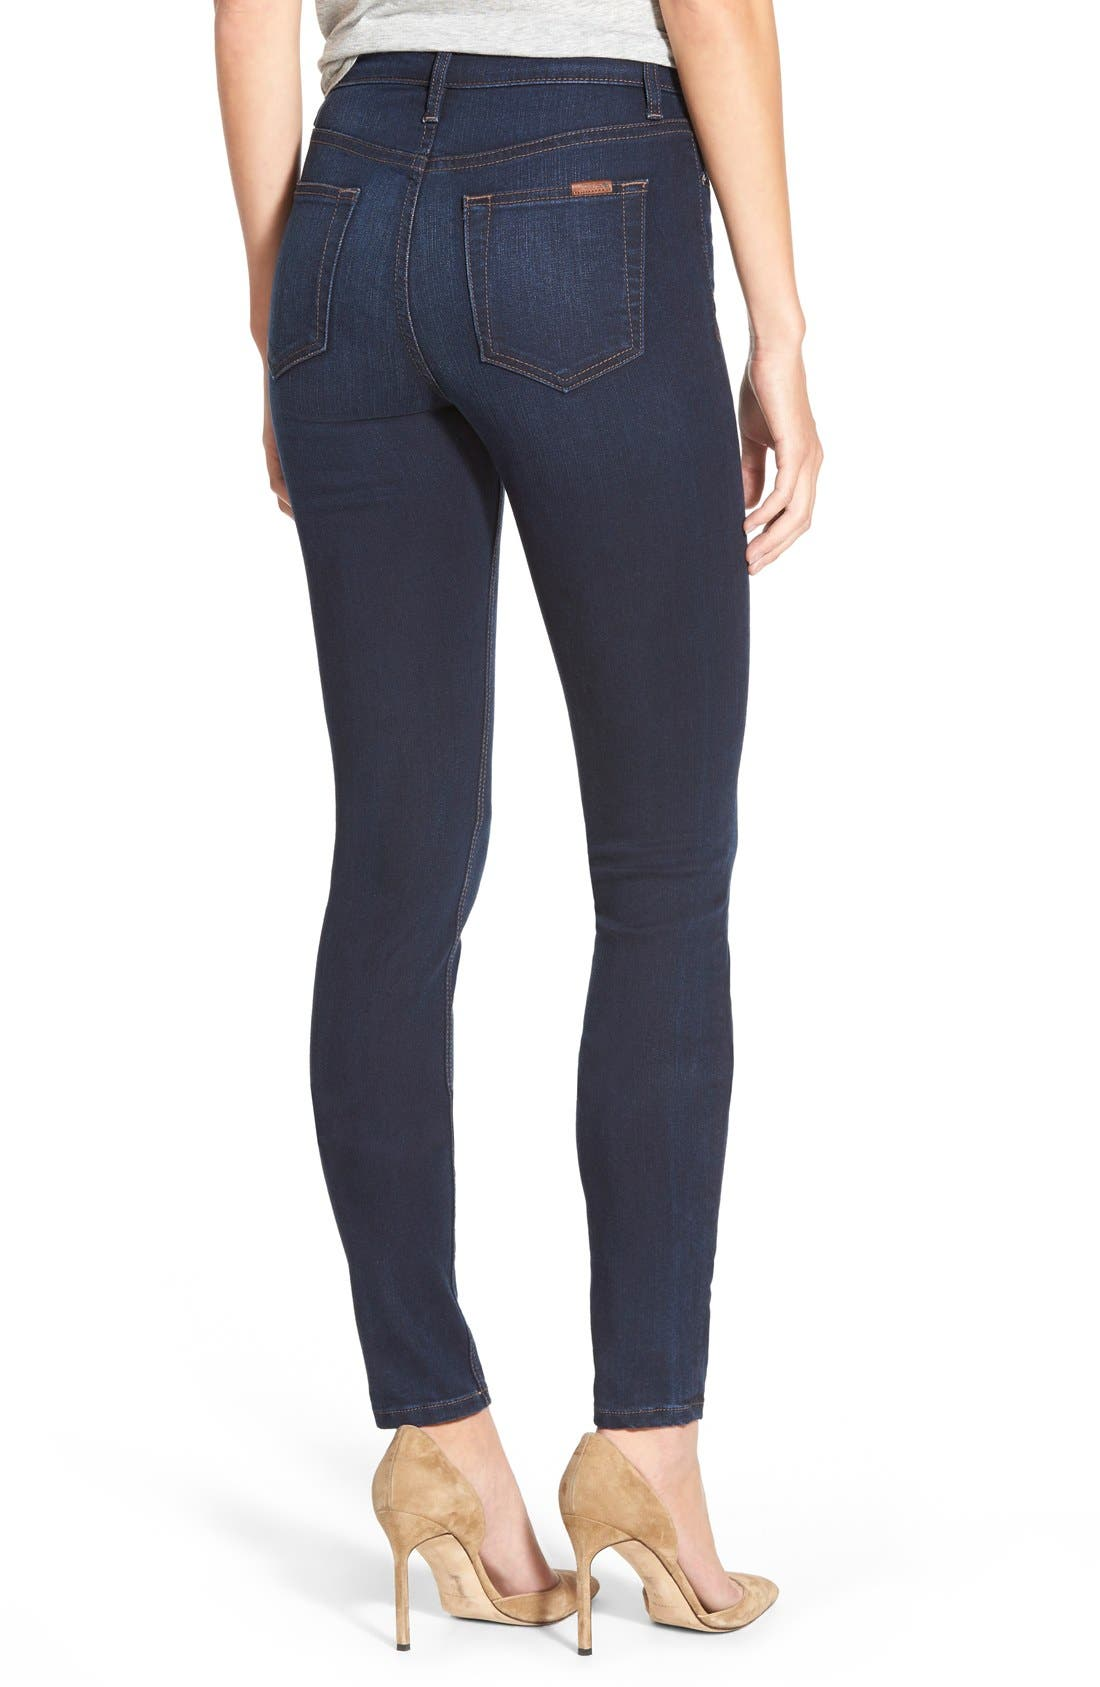 Alternate Image 2  - Joe's 'Flawless - Charlie' High Rise Skinny Jeans (Cecily)